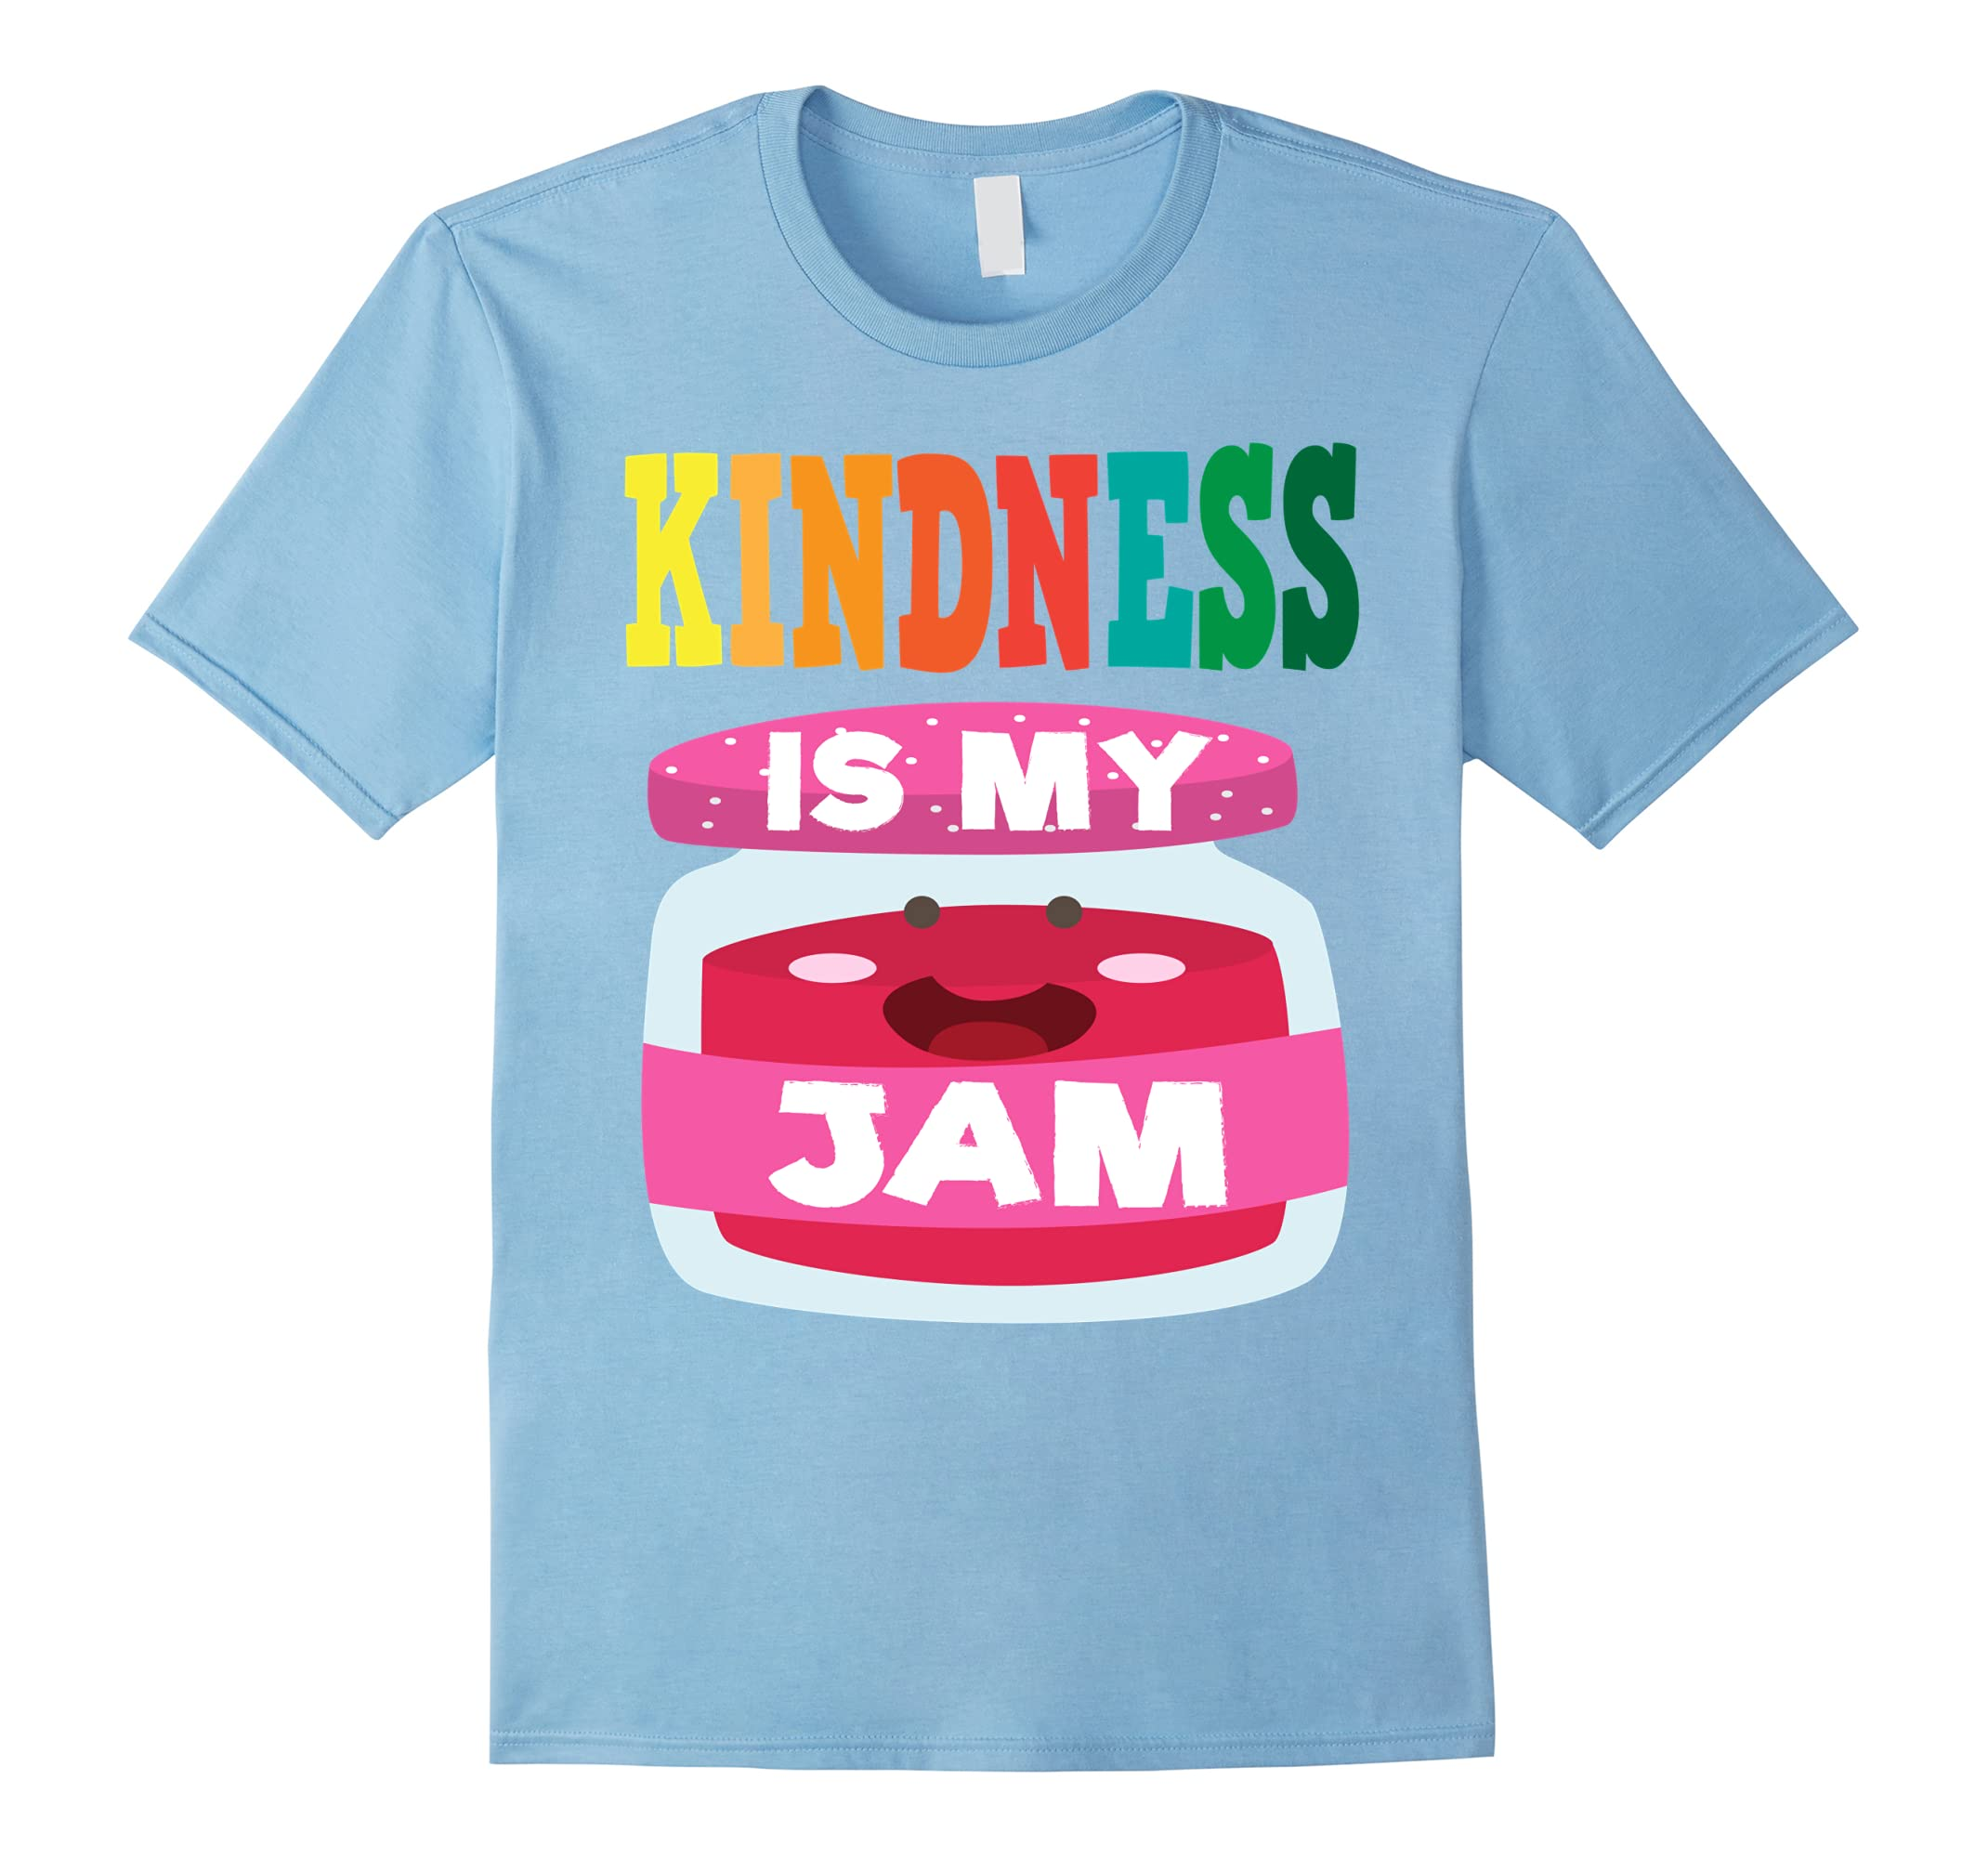 KINDNESS T Shirt Choose Kind Bullying-Tovacu